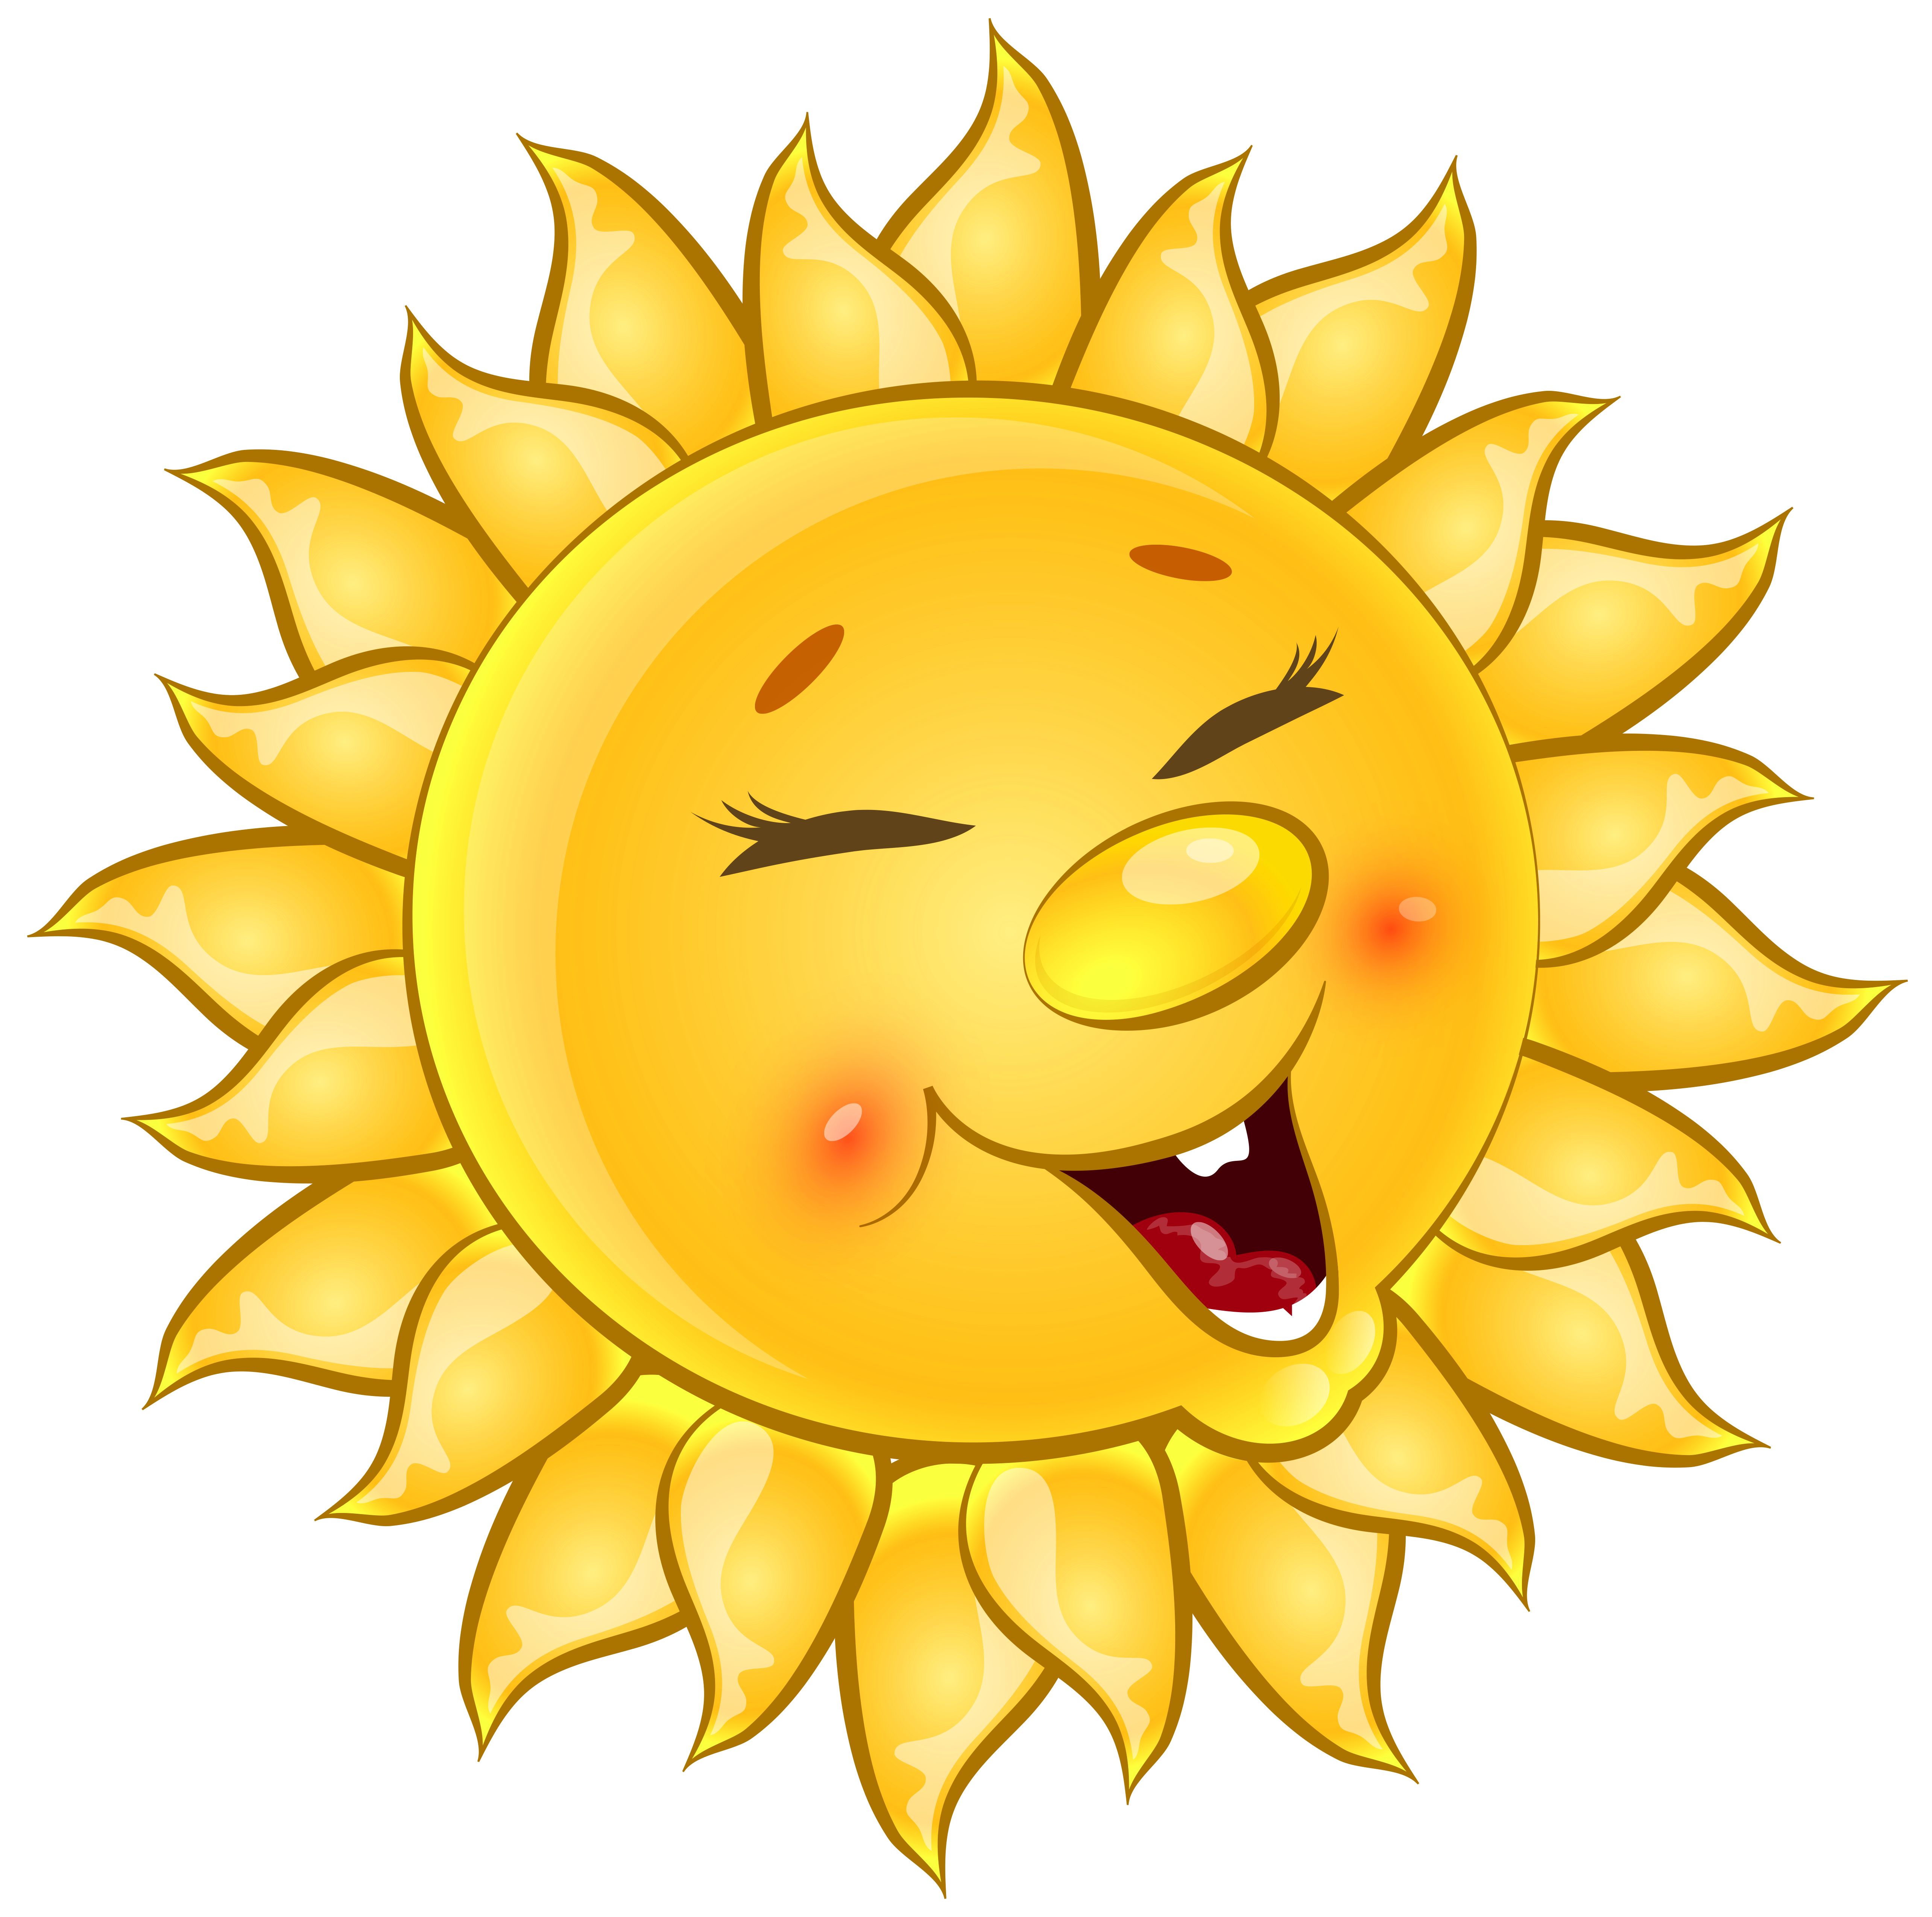 Sun cute clipart png library download Transparent Cute Sun Cartoon PNG Clipart Picture | Gallery ... png library download